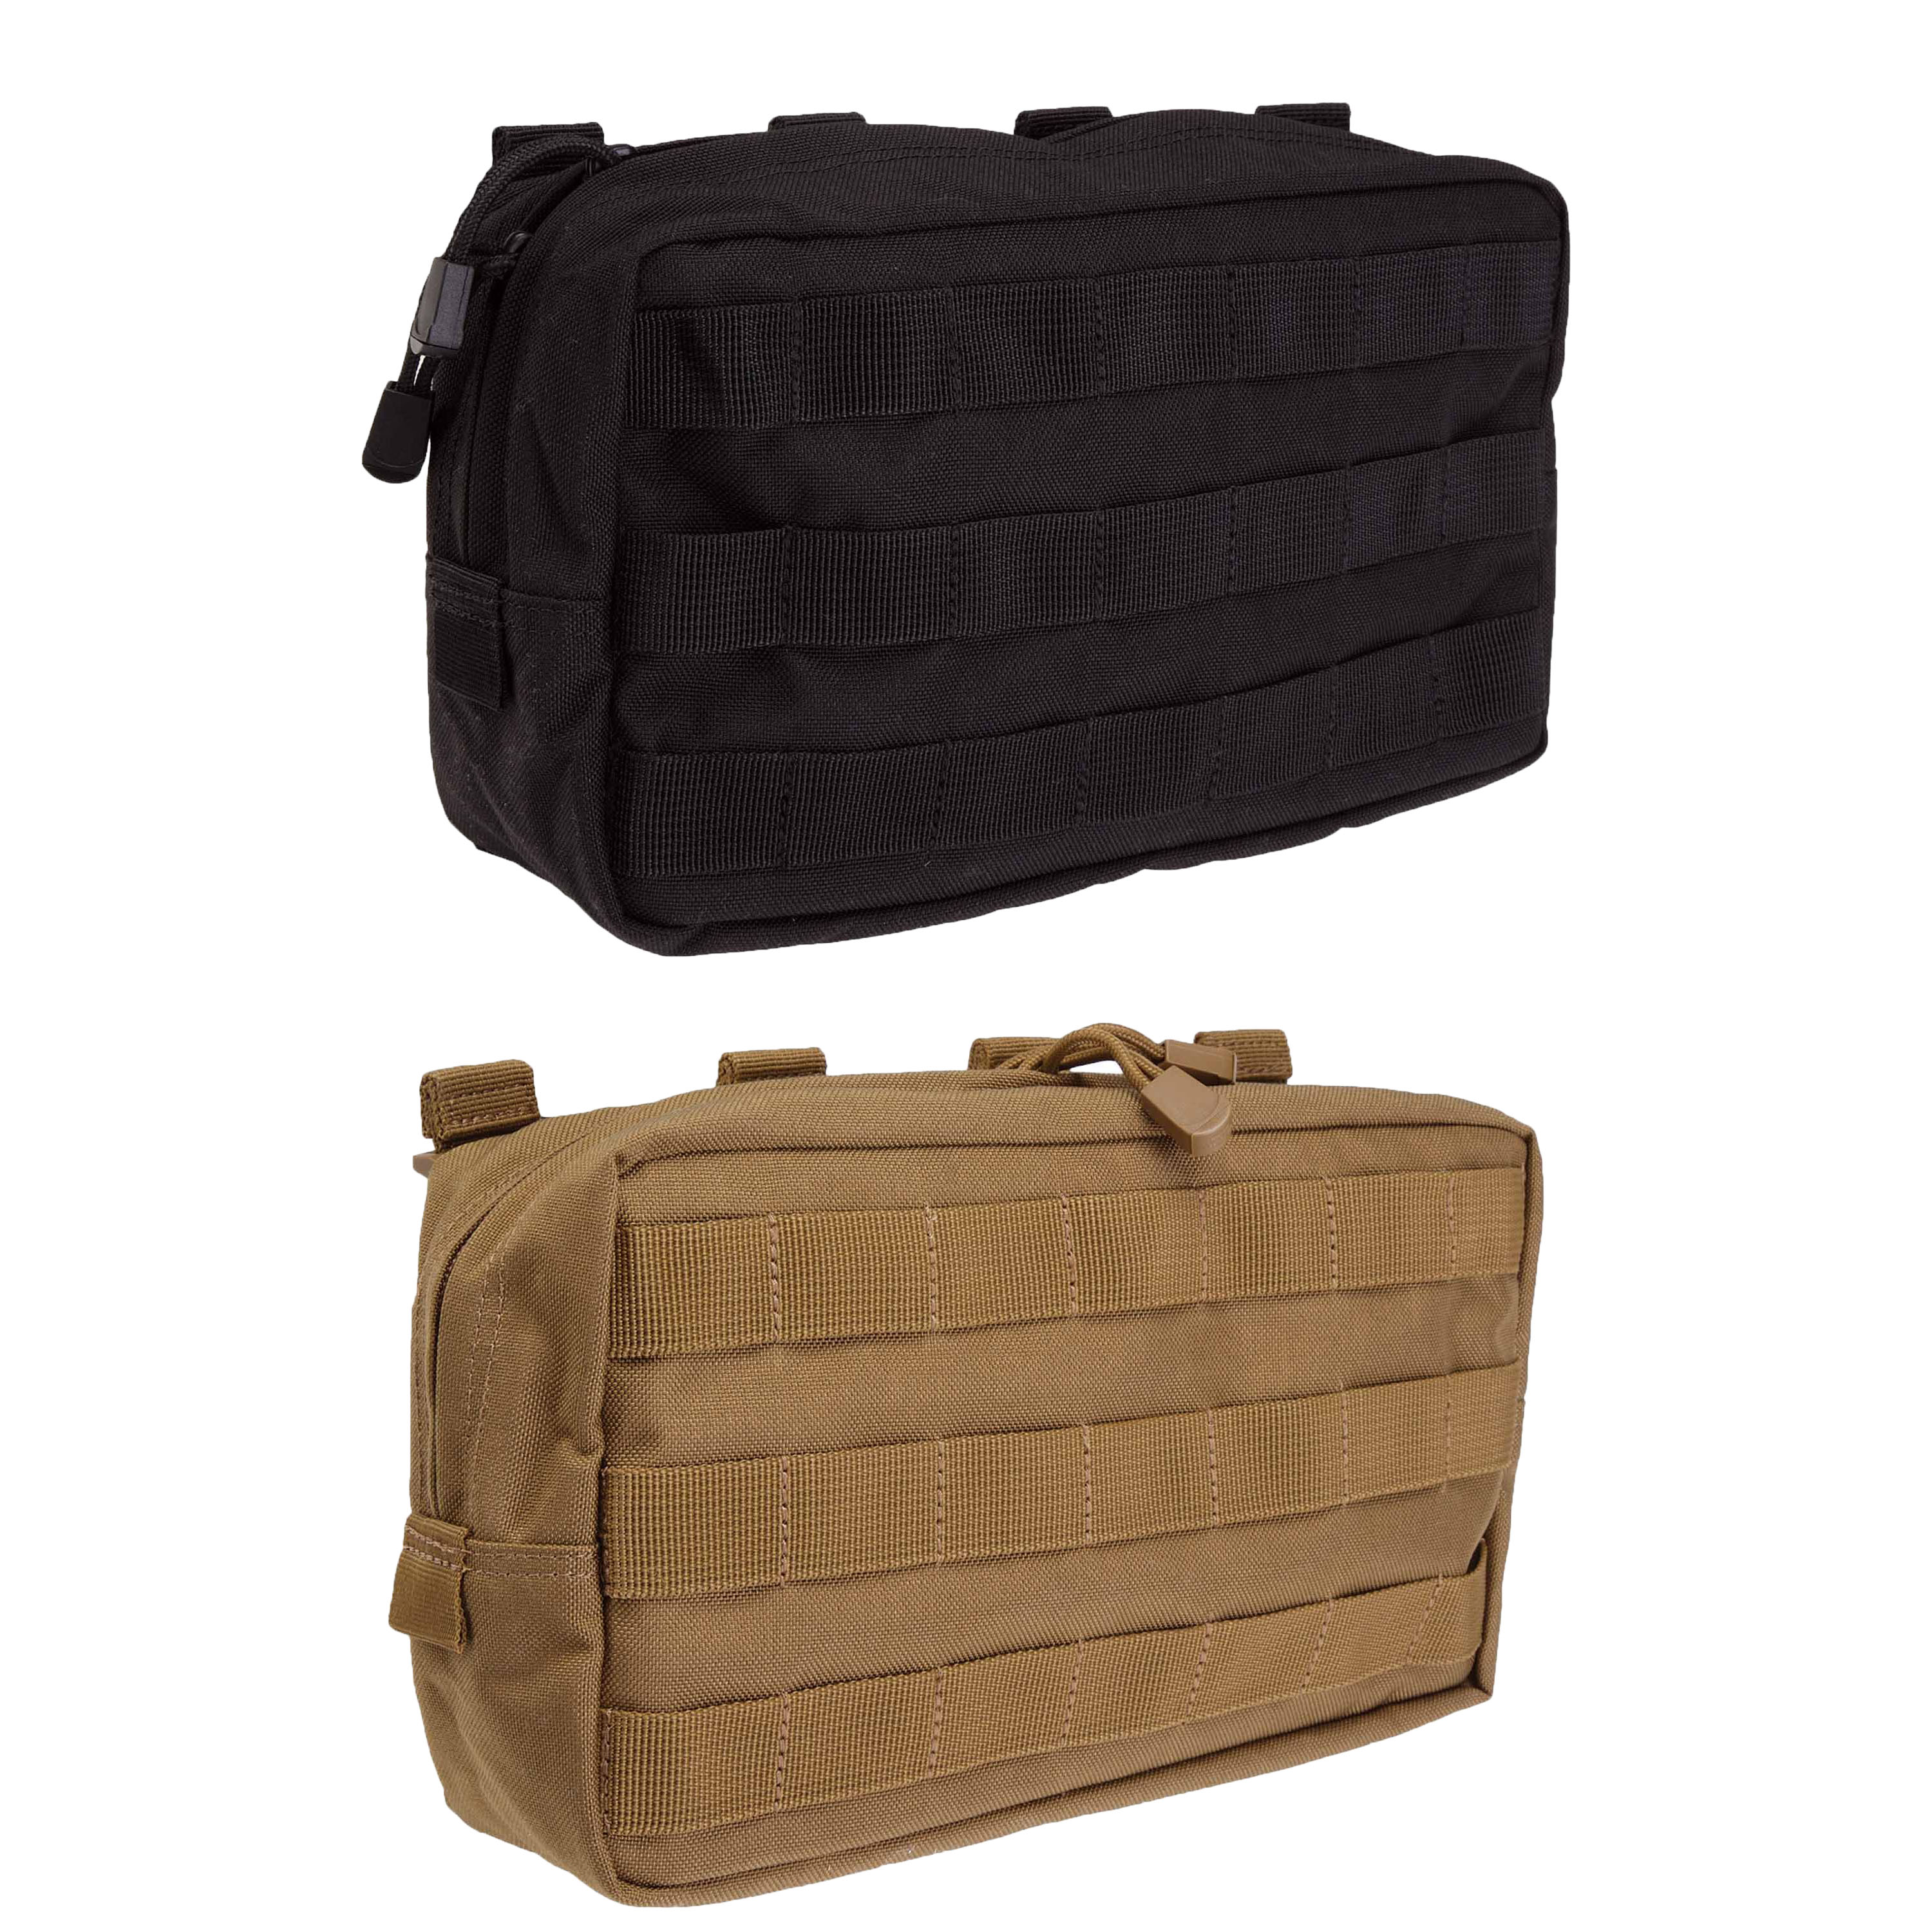 b3c69eda004 5.11 Tactical Molle Horizontal Pouch Gear Bag Style 58716